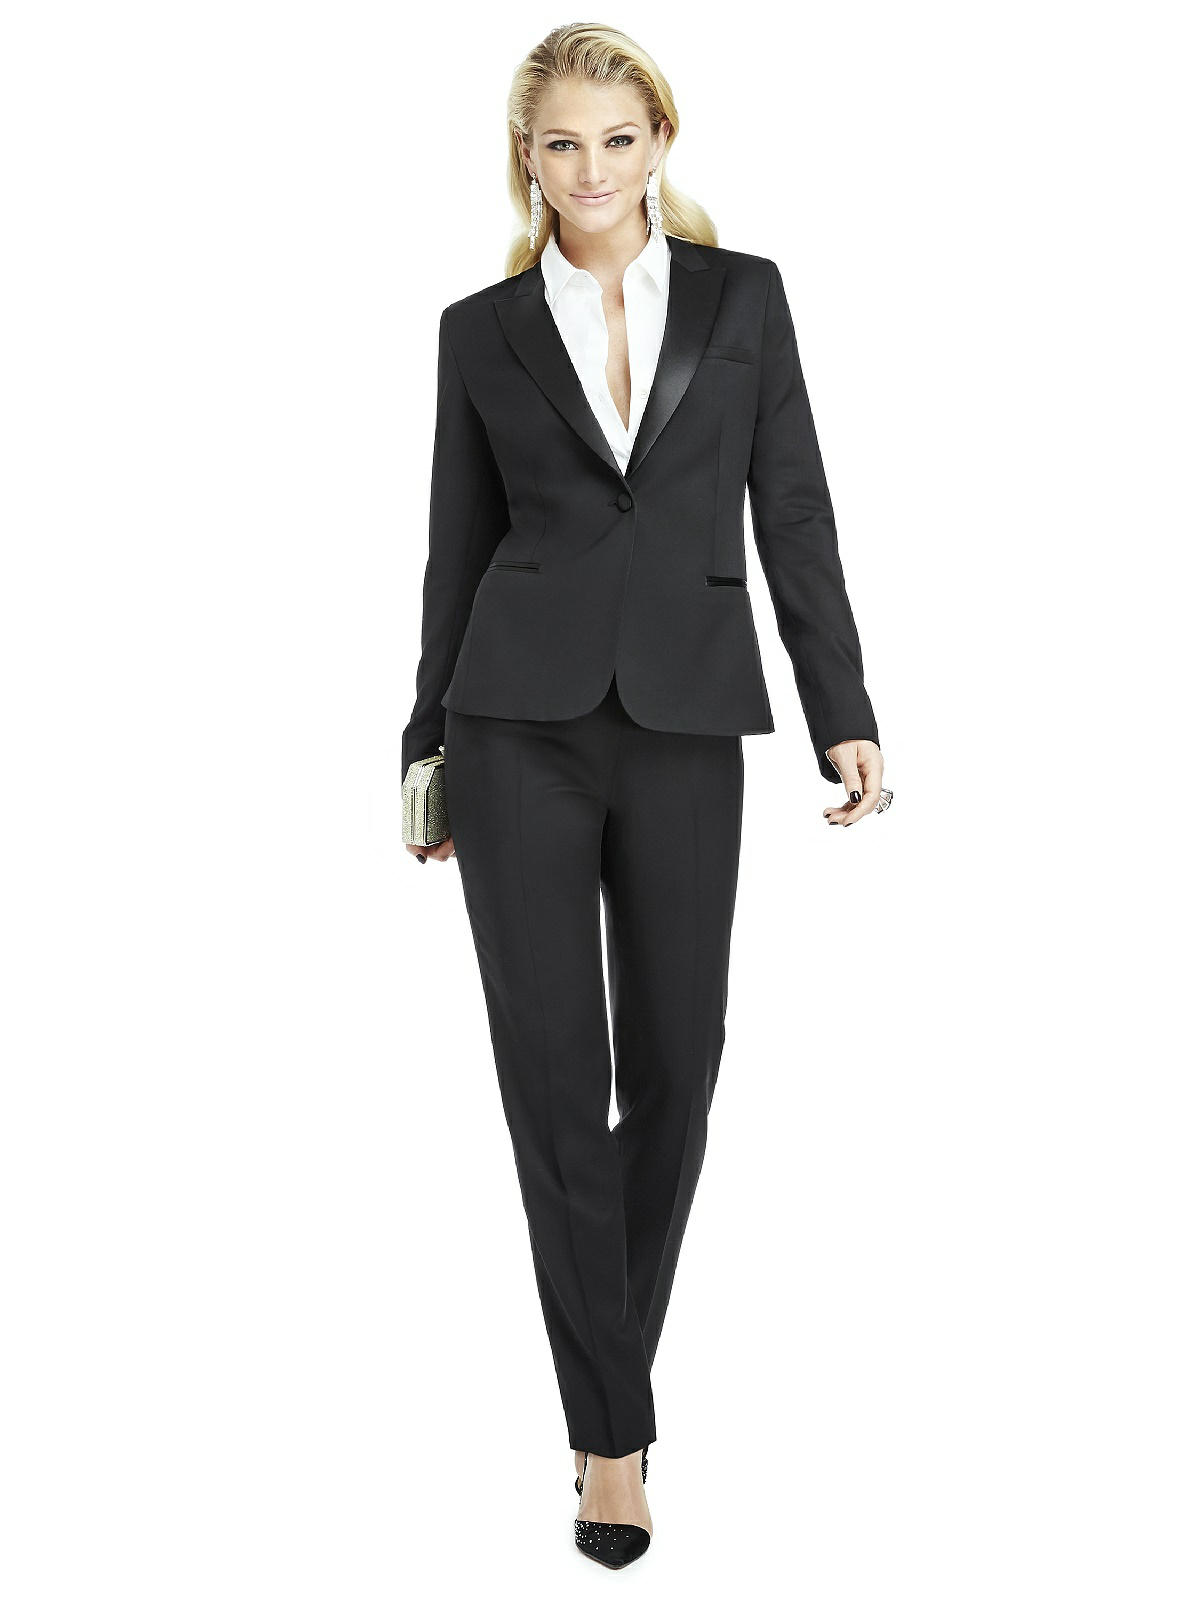 Women's Tuxedo Jacket with Peak Collar: The Marlowe by After Six ...